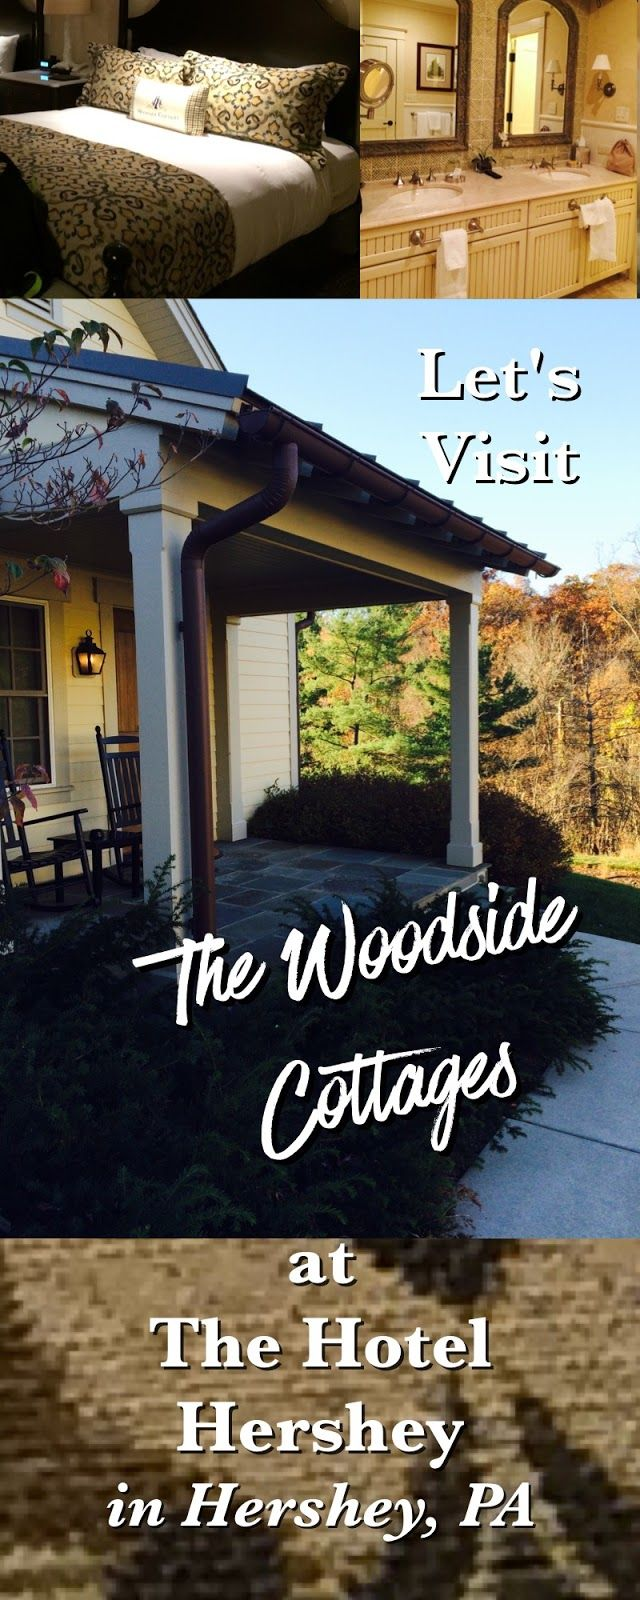 Staying At The Hotel Hershey Woodside Cottages Review Hotel At The Hotel Woodside